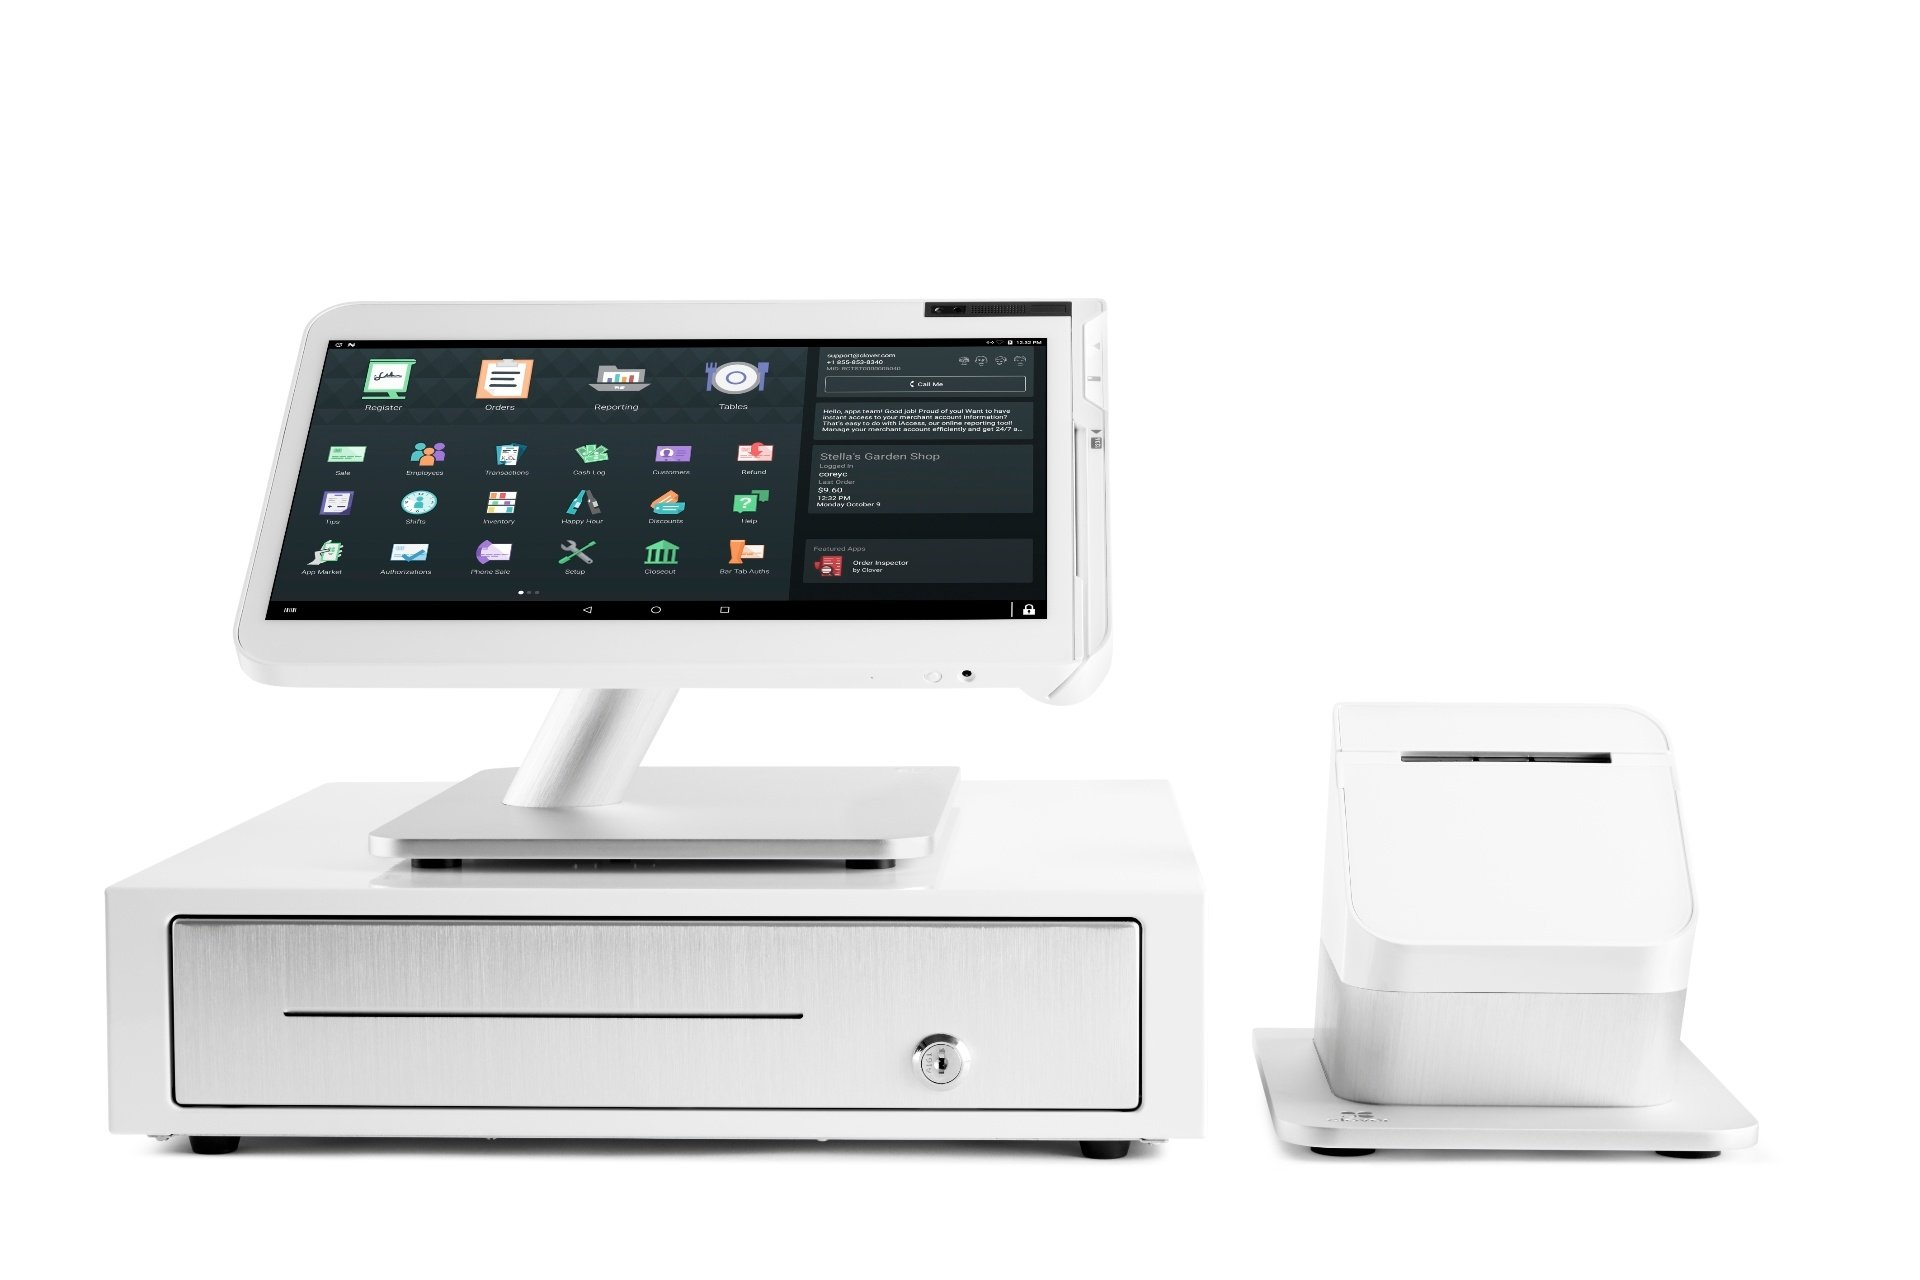 Upgrade your POS with new Clover Station